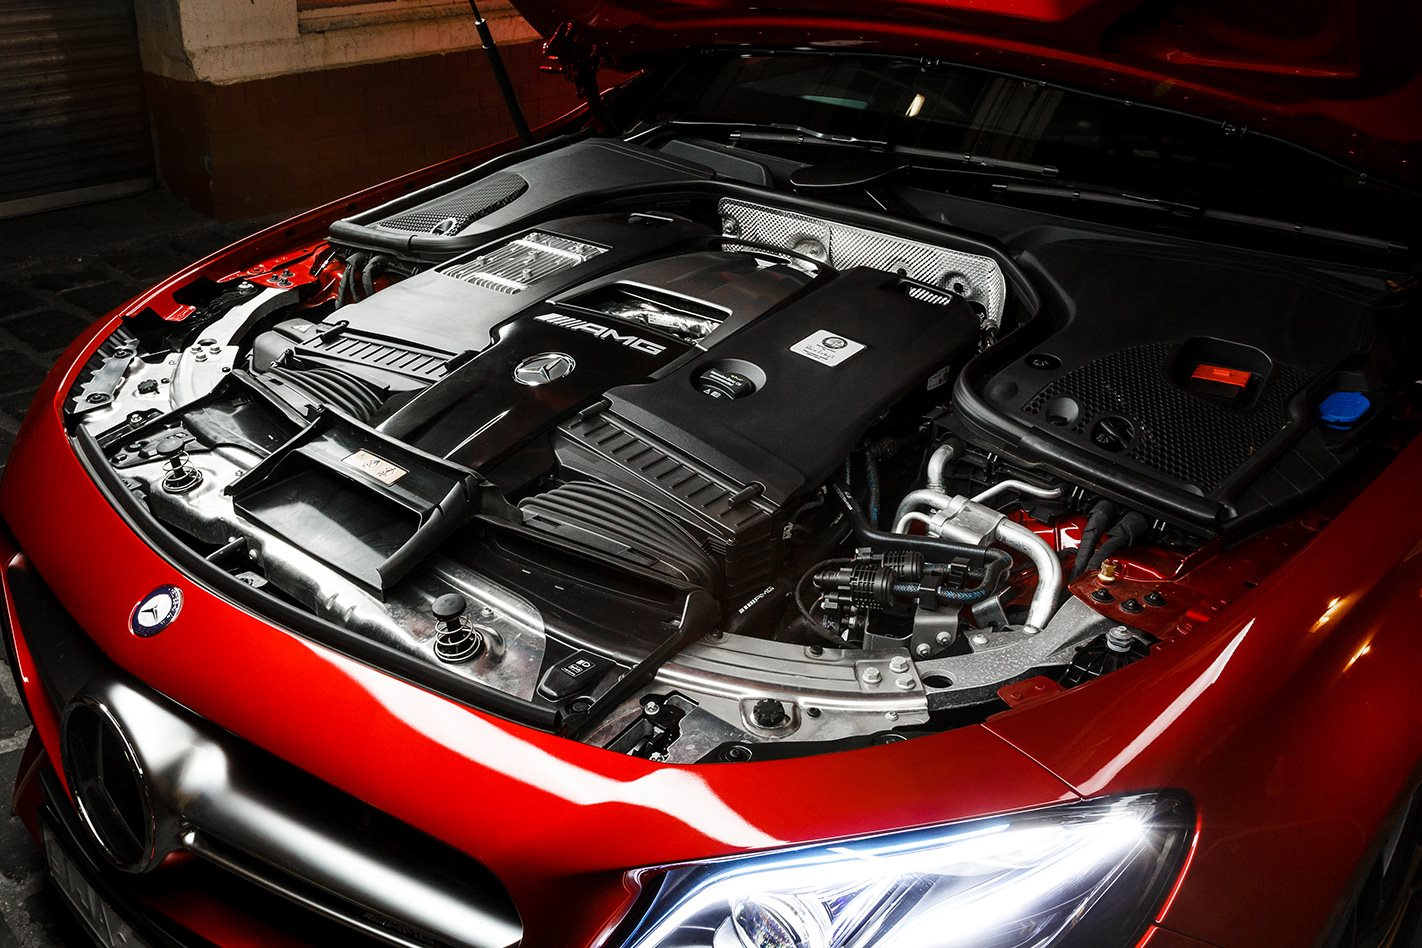 2017 MercedesAMG E63 S engine